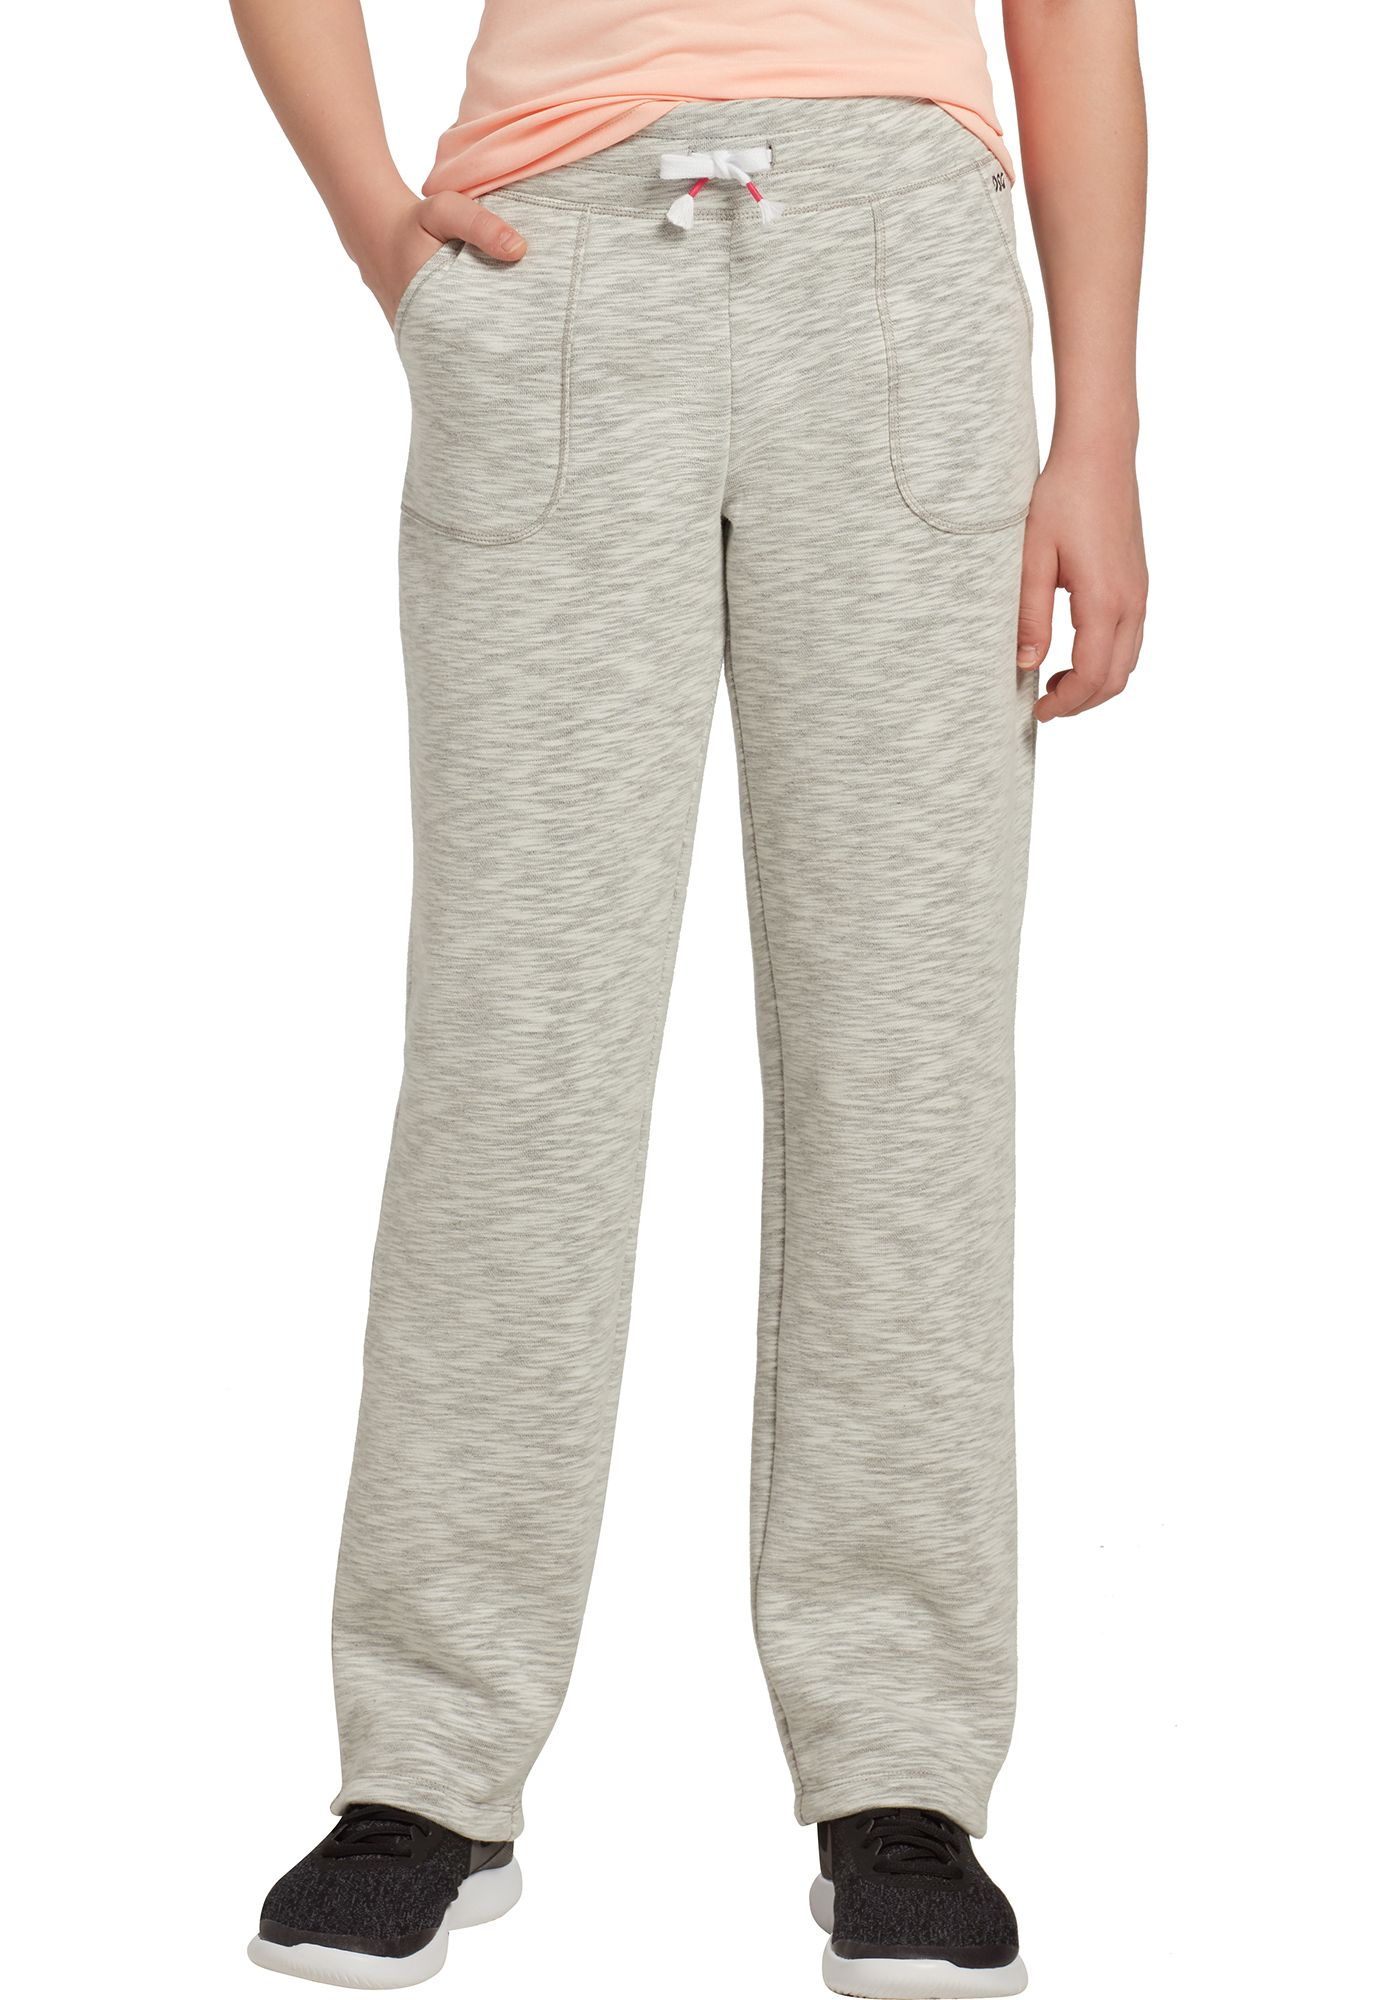 DSG Girls' Everyday Cotton Fleece Pants